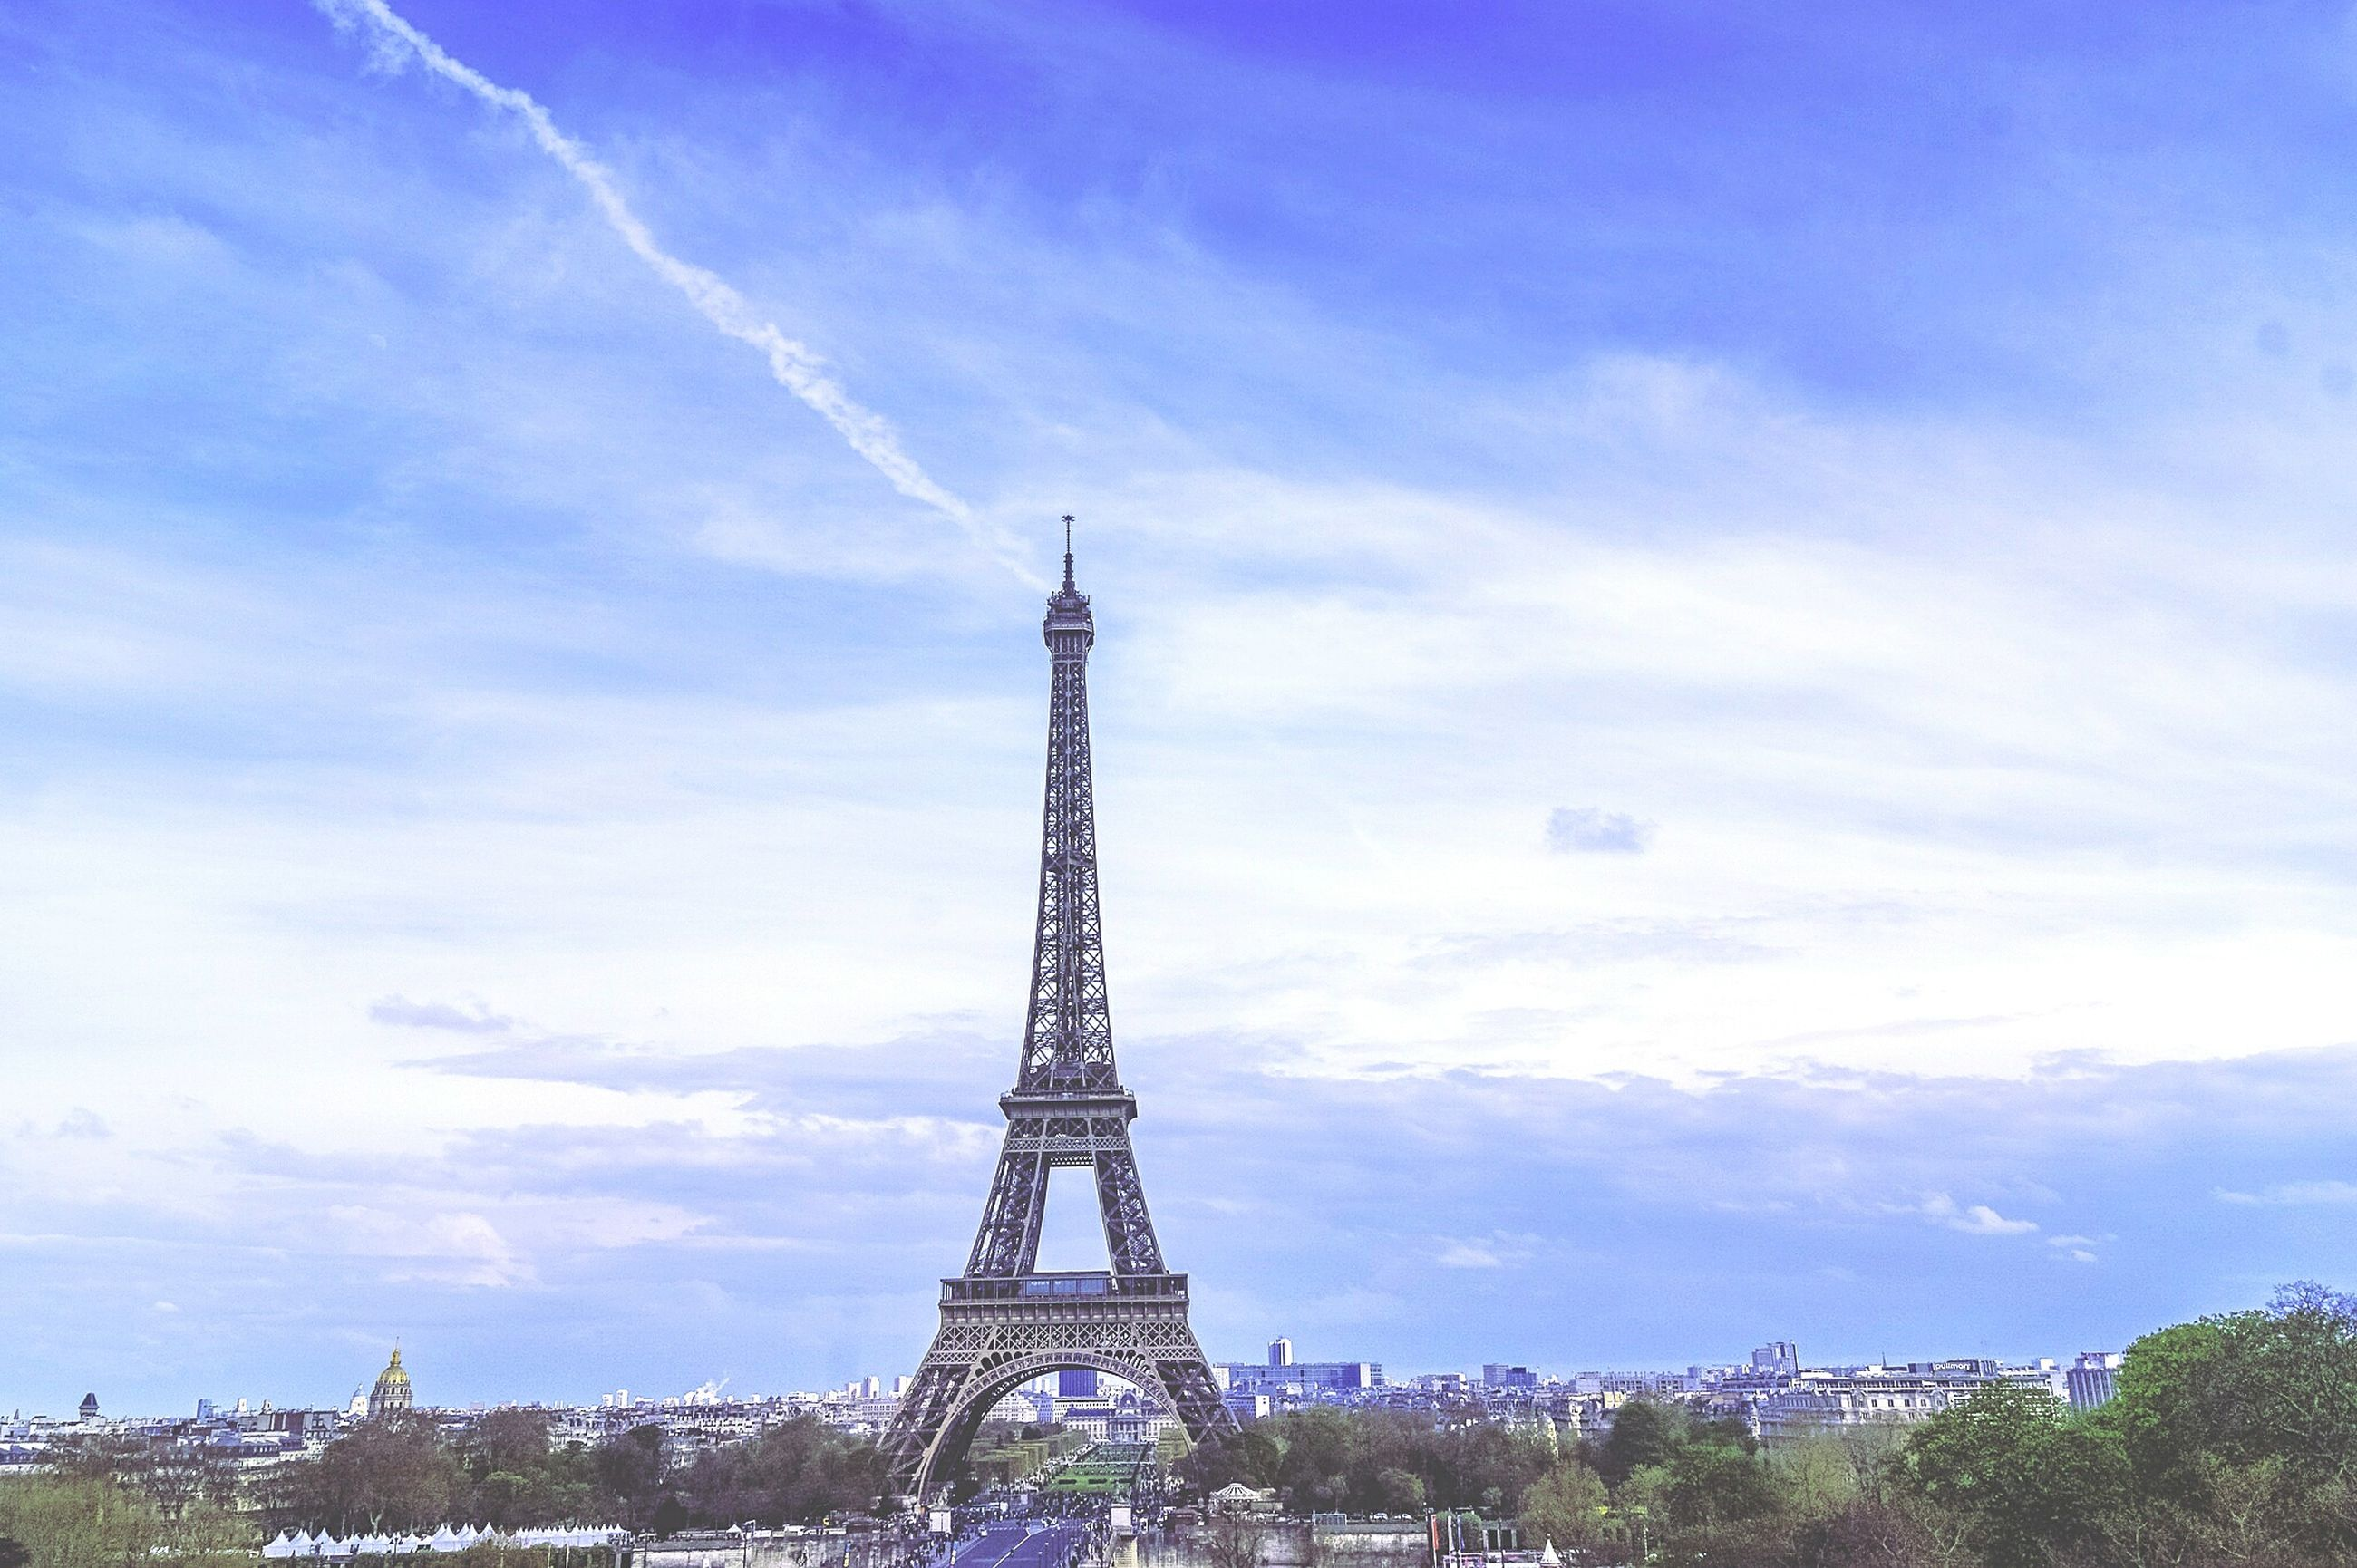 eiffel tower, built structure, tower, architecture, sky, tall - high, famous place, travel destinations, international landmark, low angle view, cloud - sky, tourism, communications tower, metal, capital cities, travel, culture, building exterior, tree, cloudy